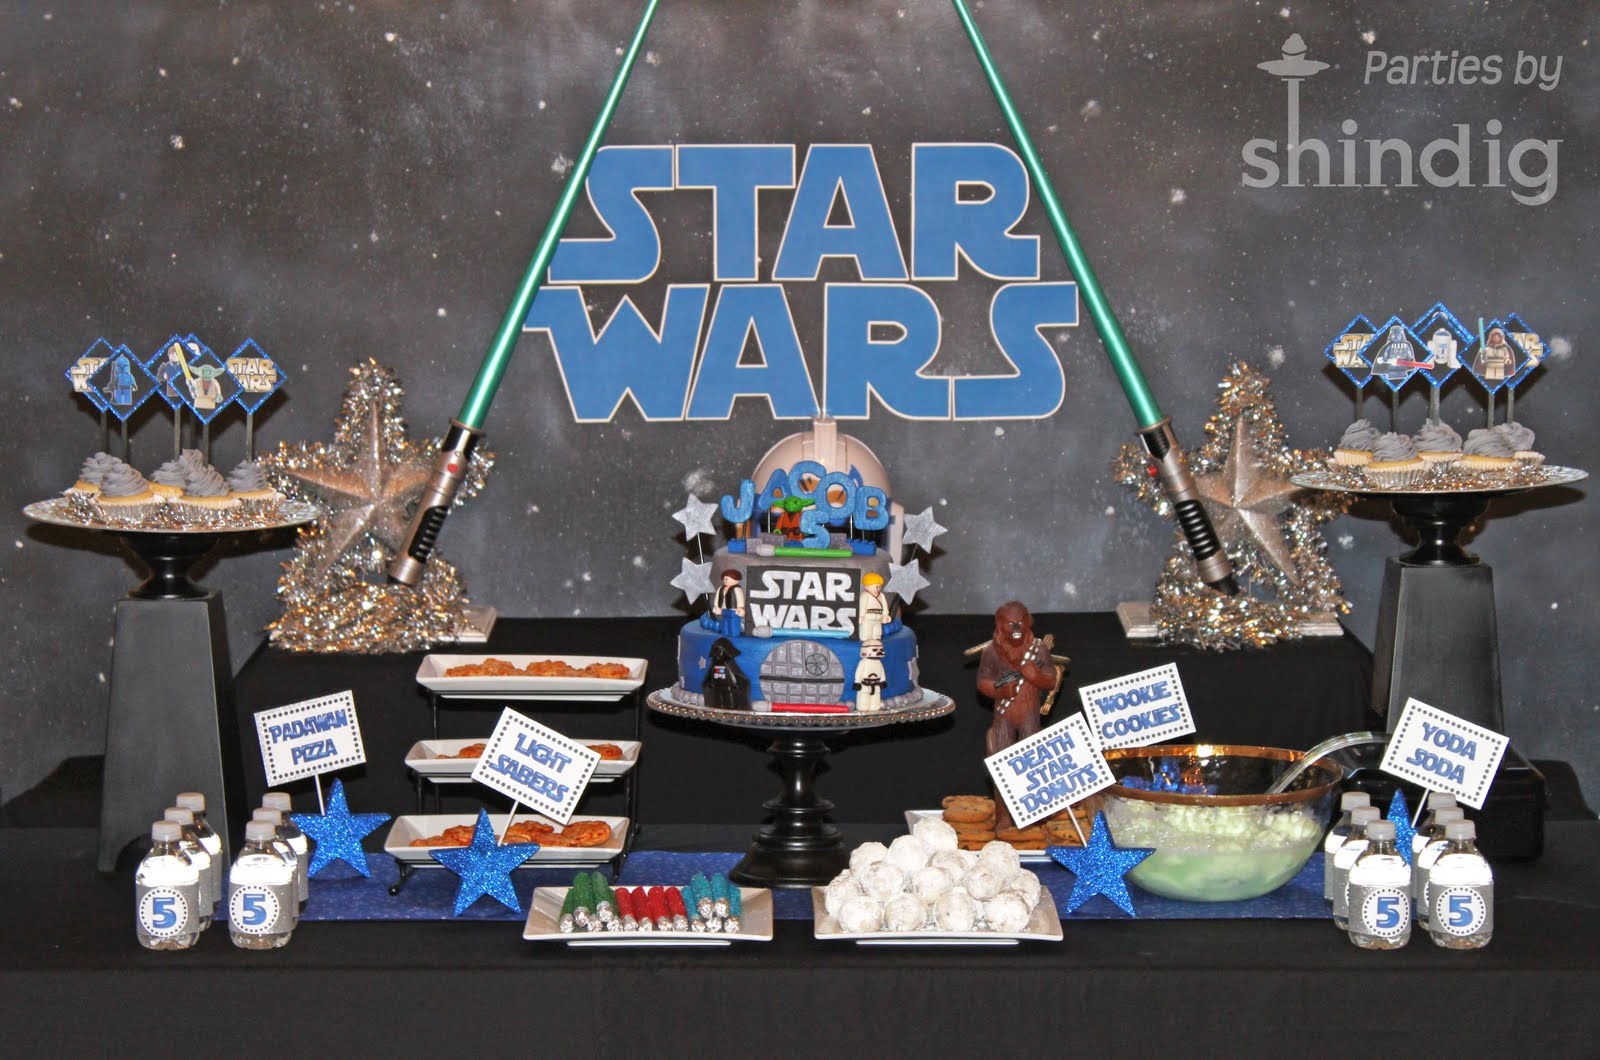 Star Wars Party Supplies